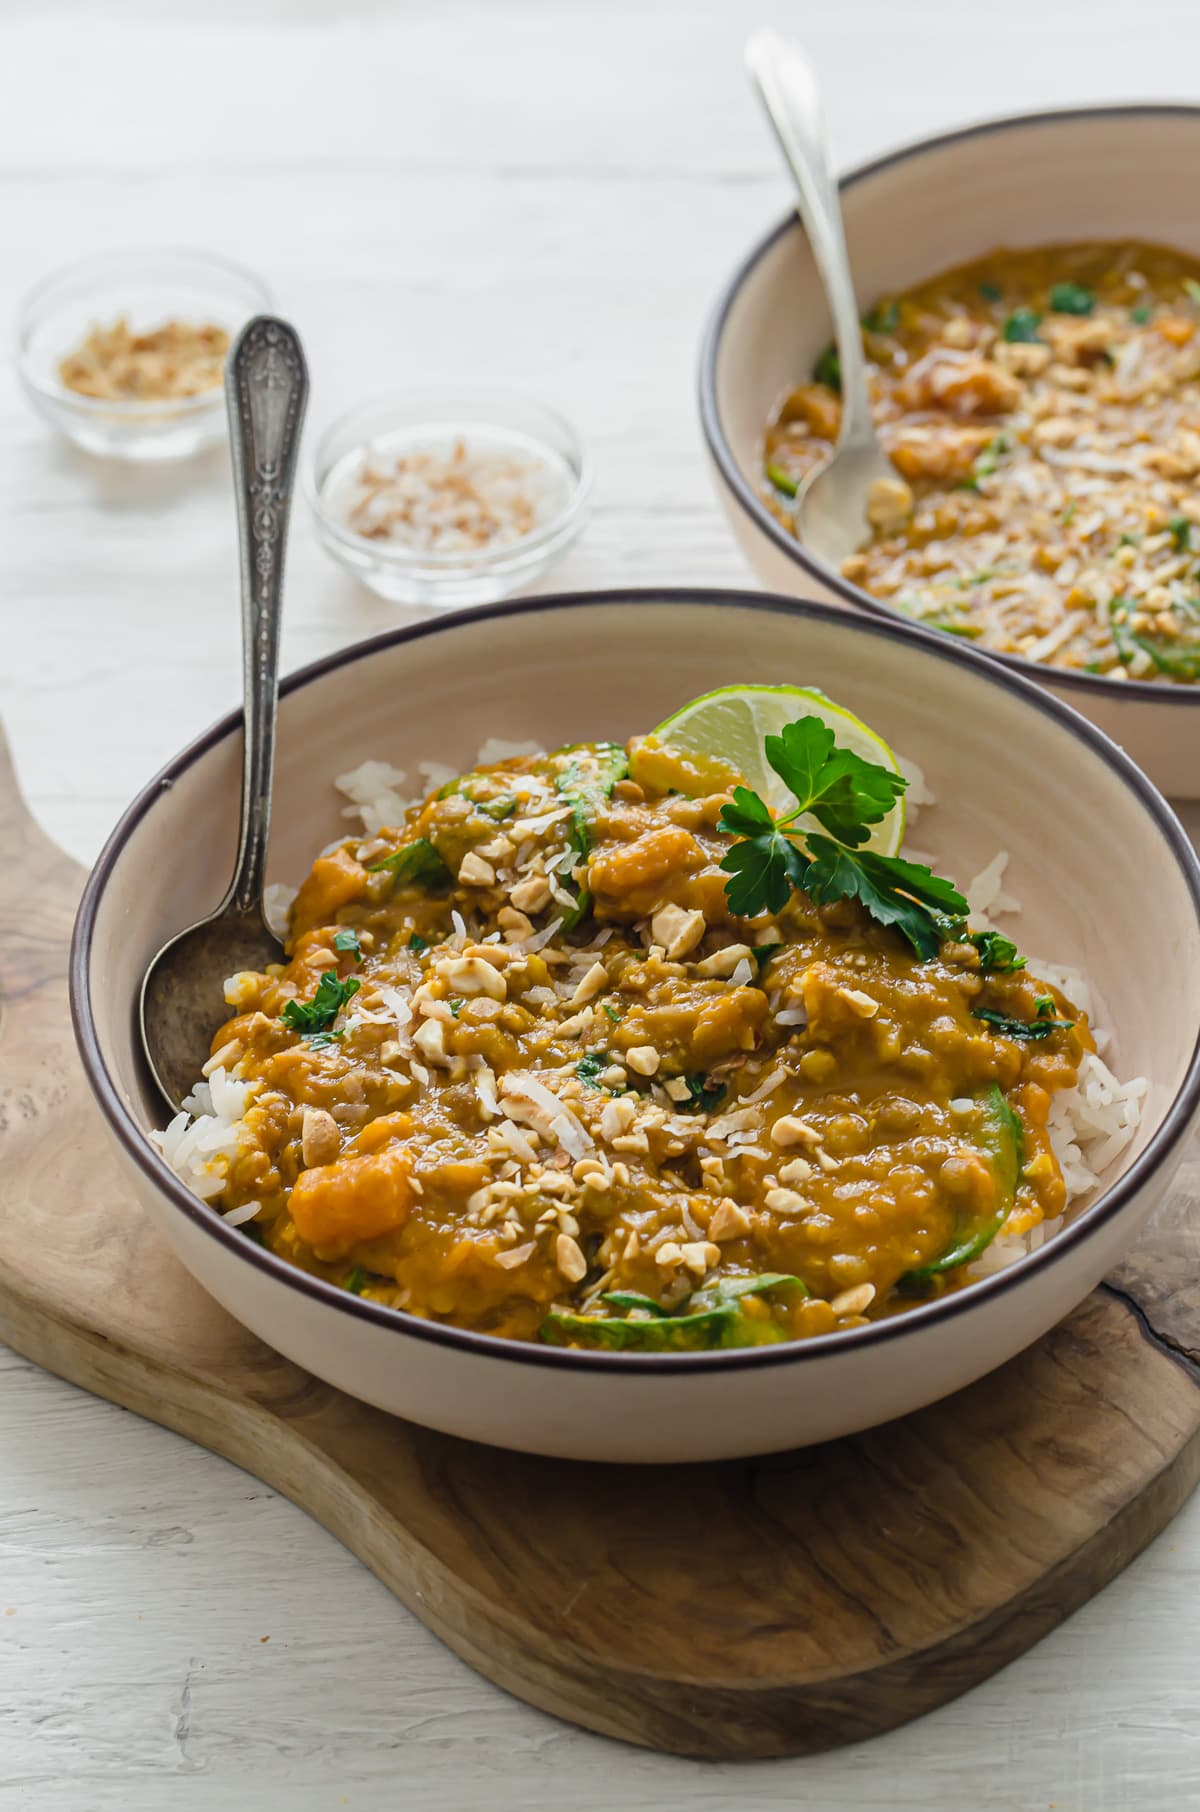 Two bowls of sweet potato lentil curry with small bowls of toasted coconut and chopped peanuts on the side.